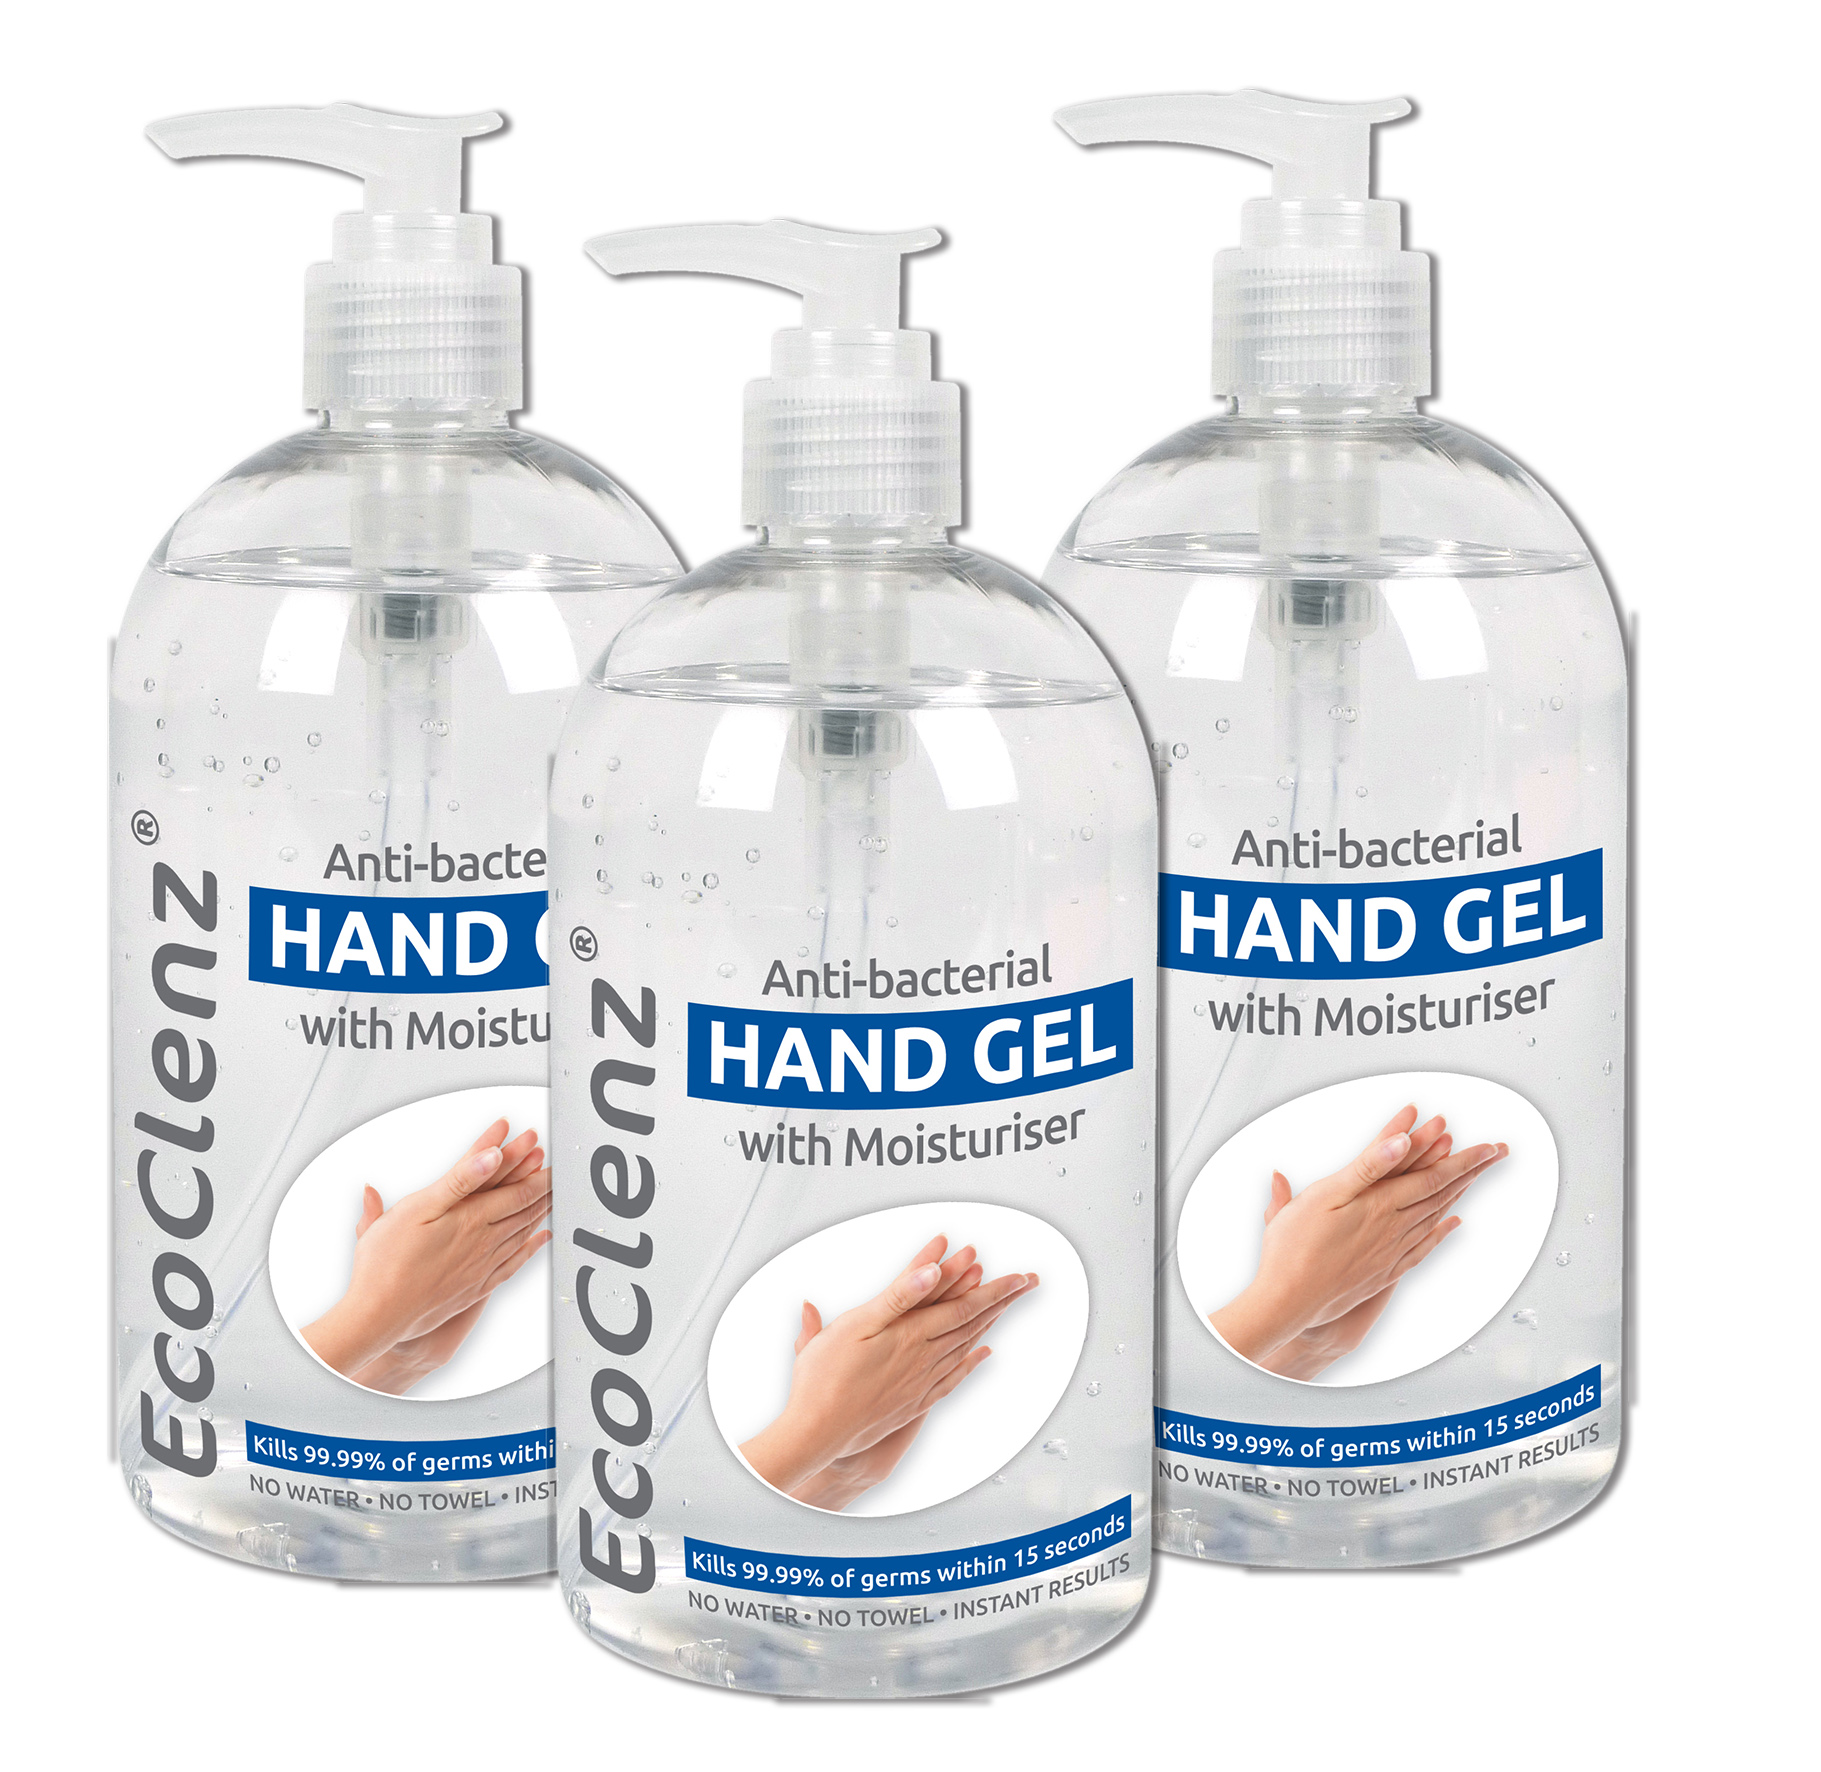 3x  500ml Hand Sanitiser Gel with Moisturiser  Antibacterial  - Pack of 3 thumbnail image 1